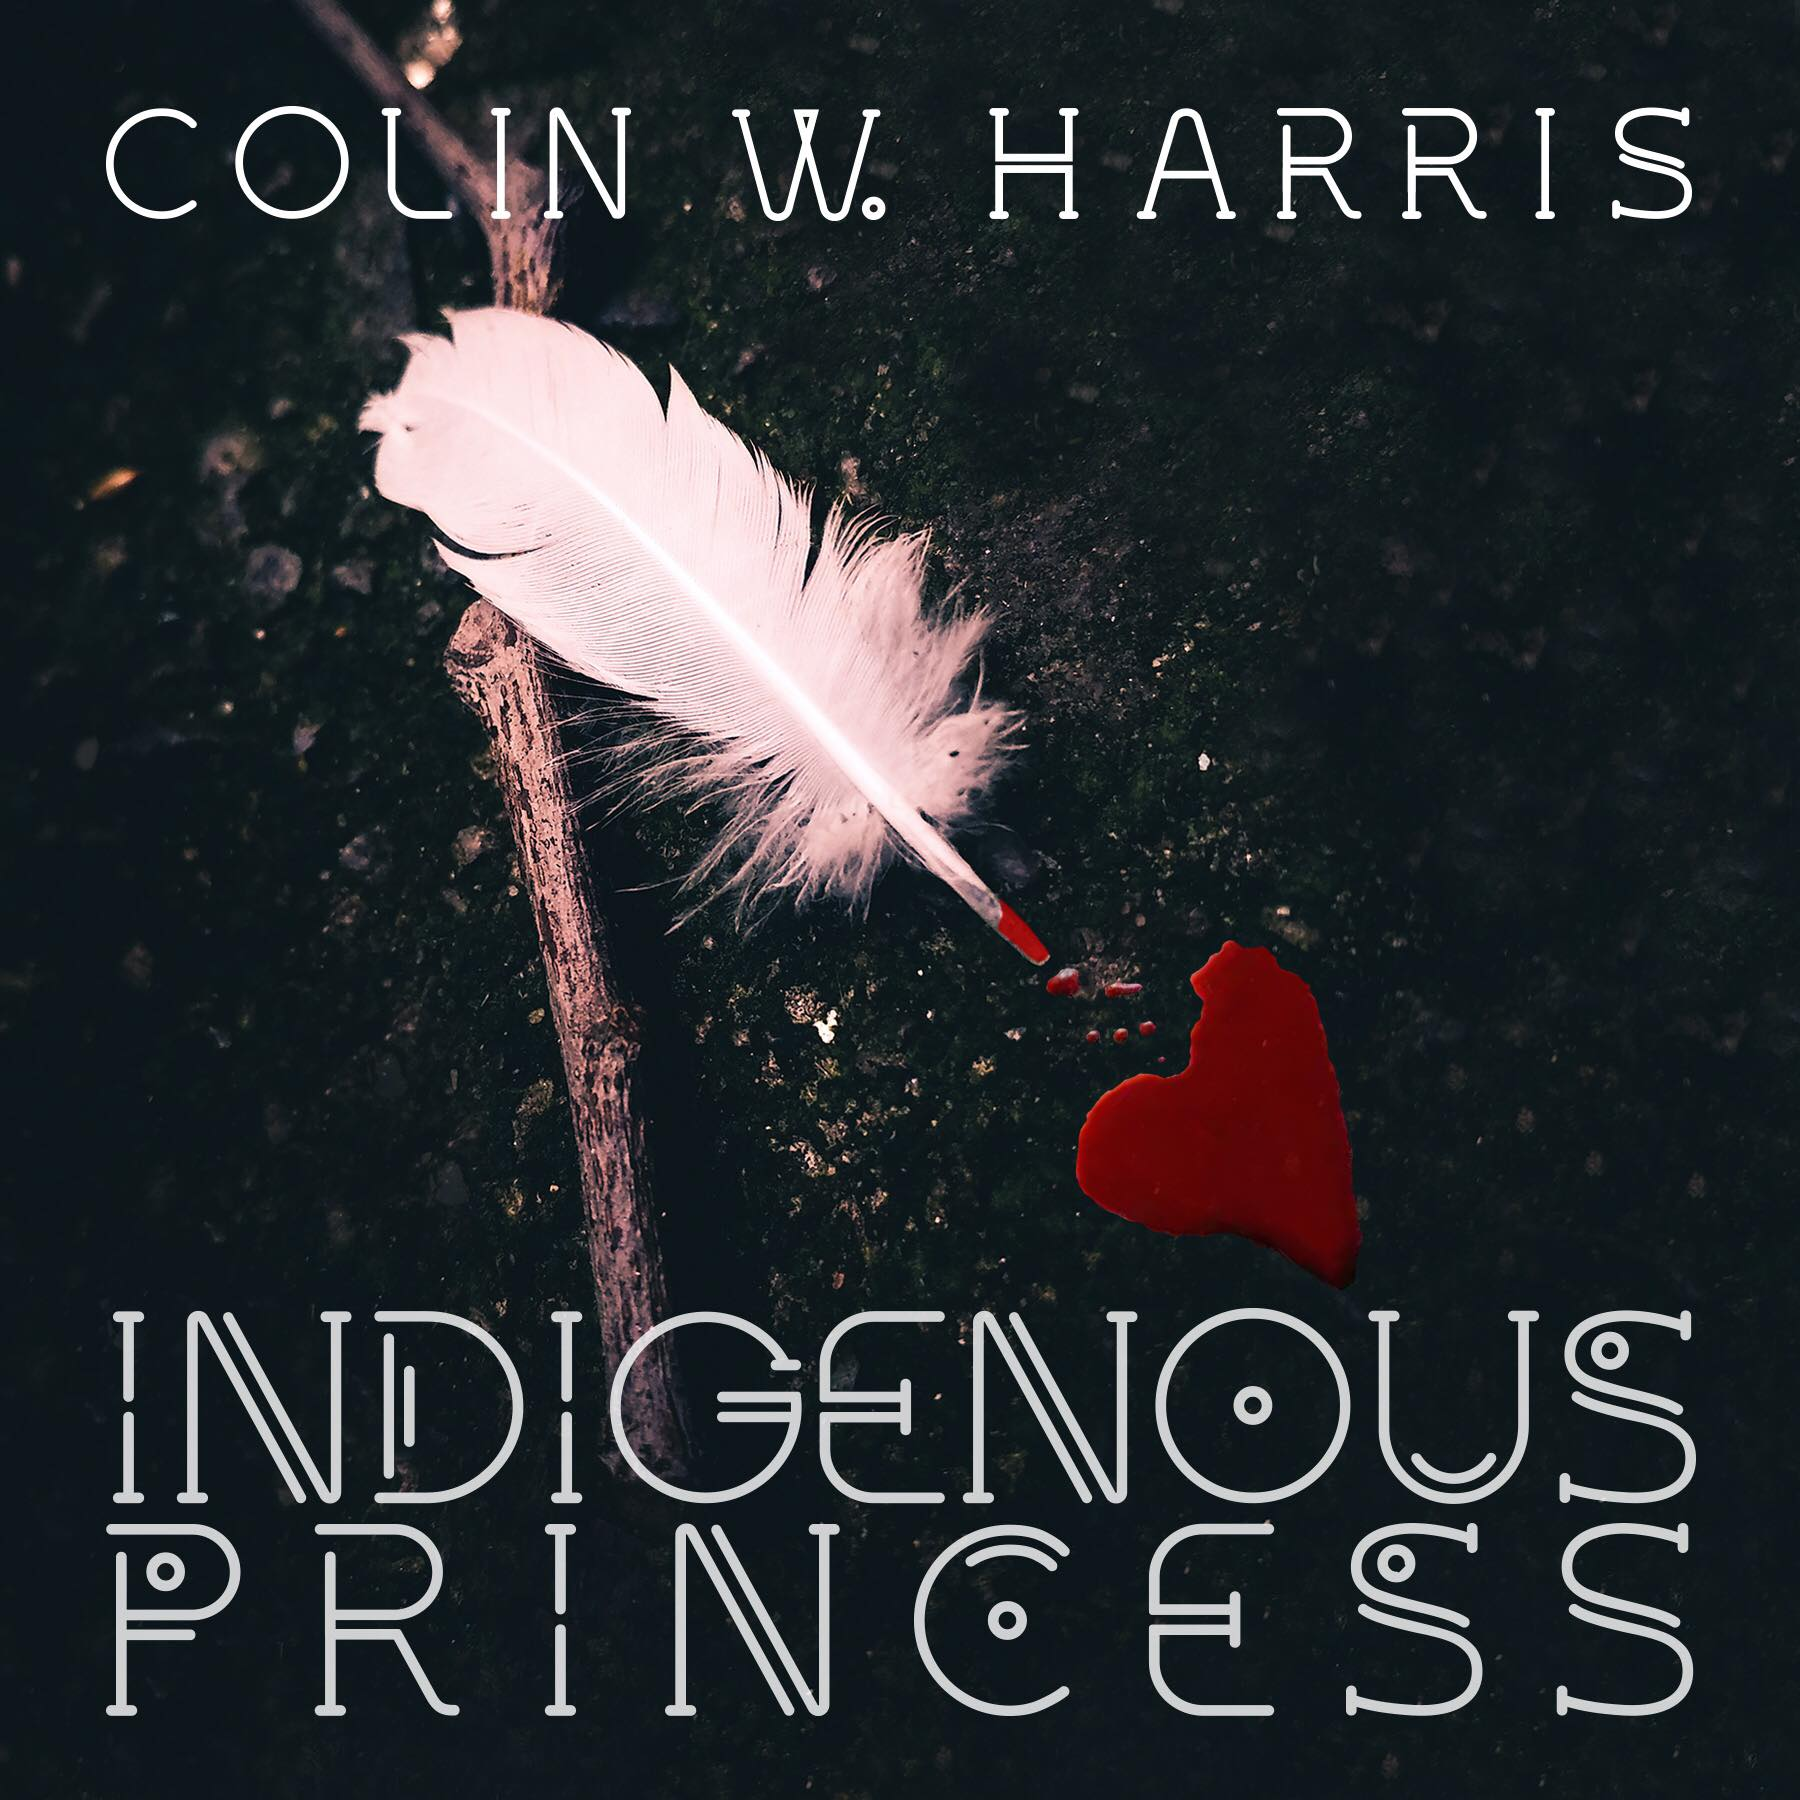 Indigenous Princess Colin W. Harris Graphic Art Sarah Hansen